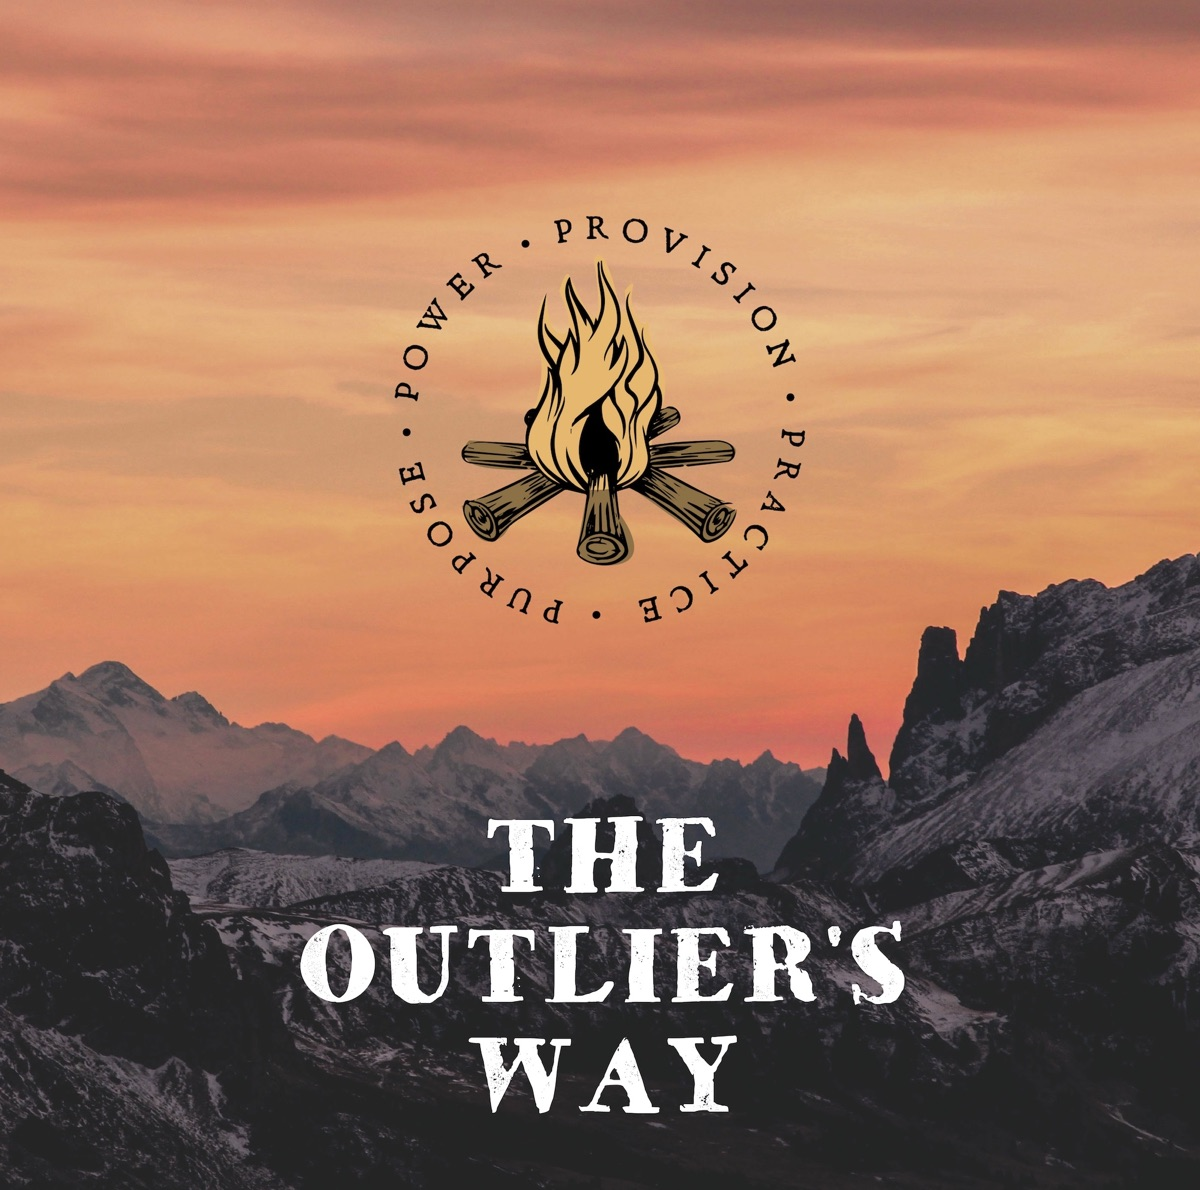 The Outlier's Way